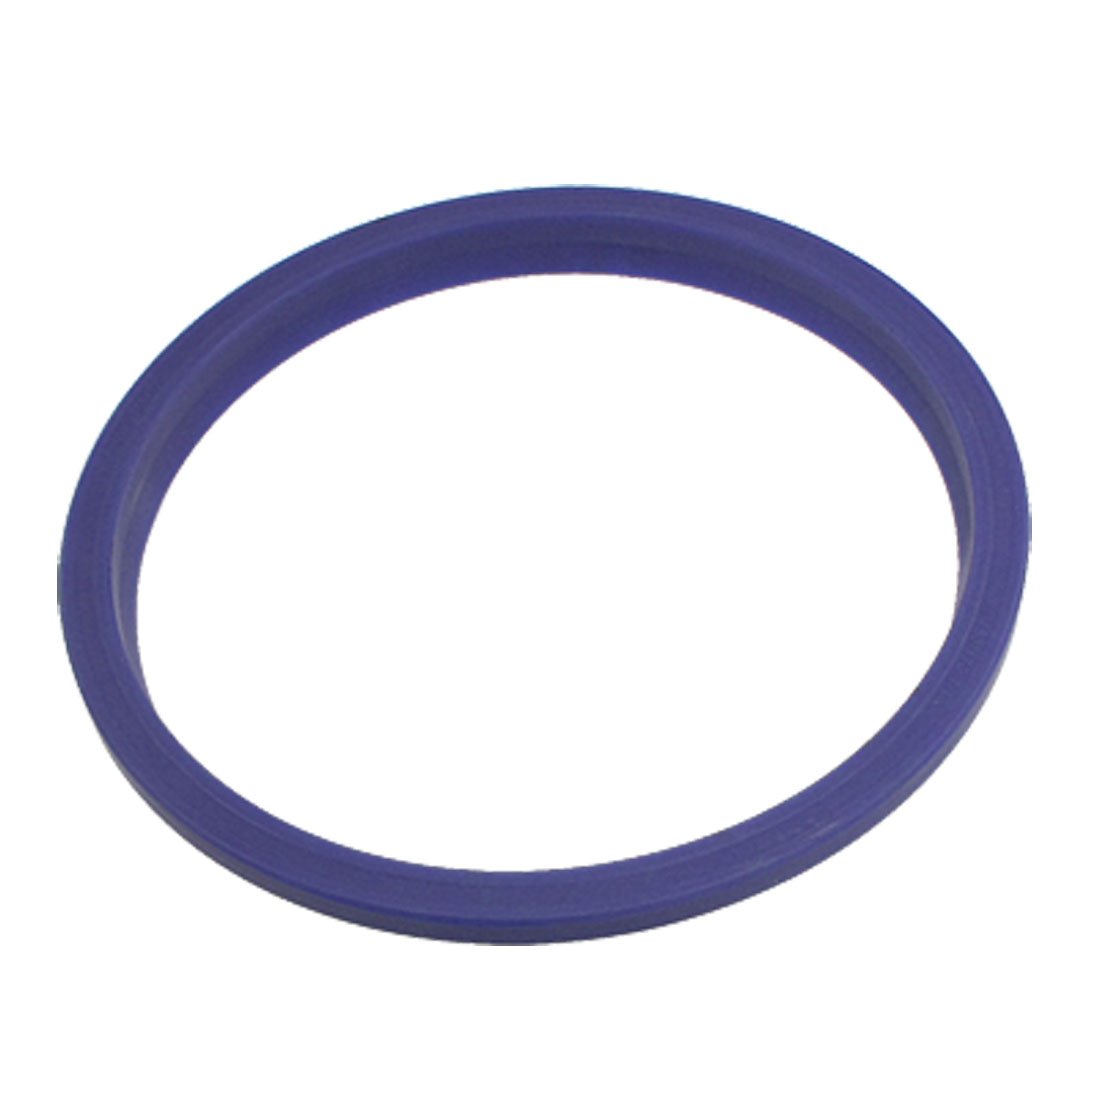 Hydraulic Machine FJ 150mm x 170mm x 7mm x 13mm Blue PU Dust Shaft Seal